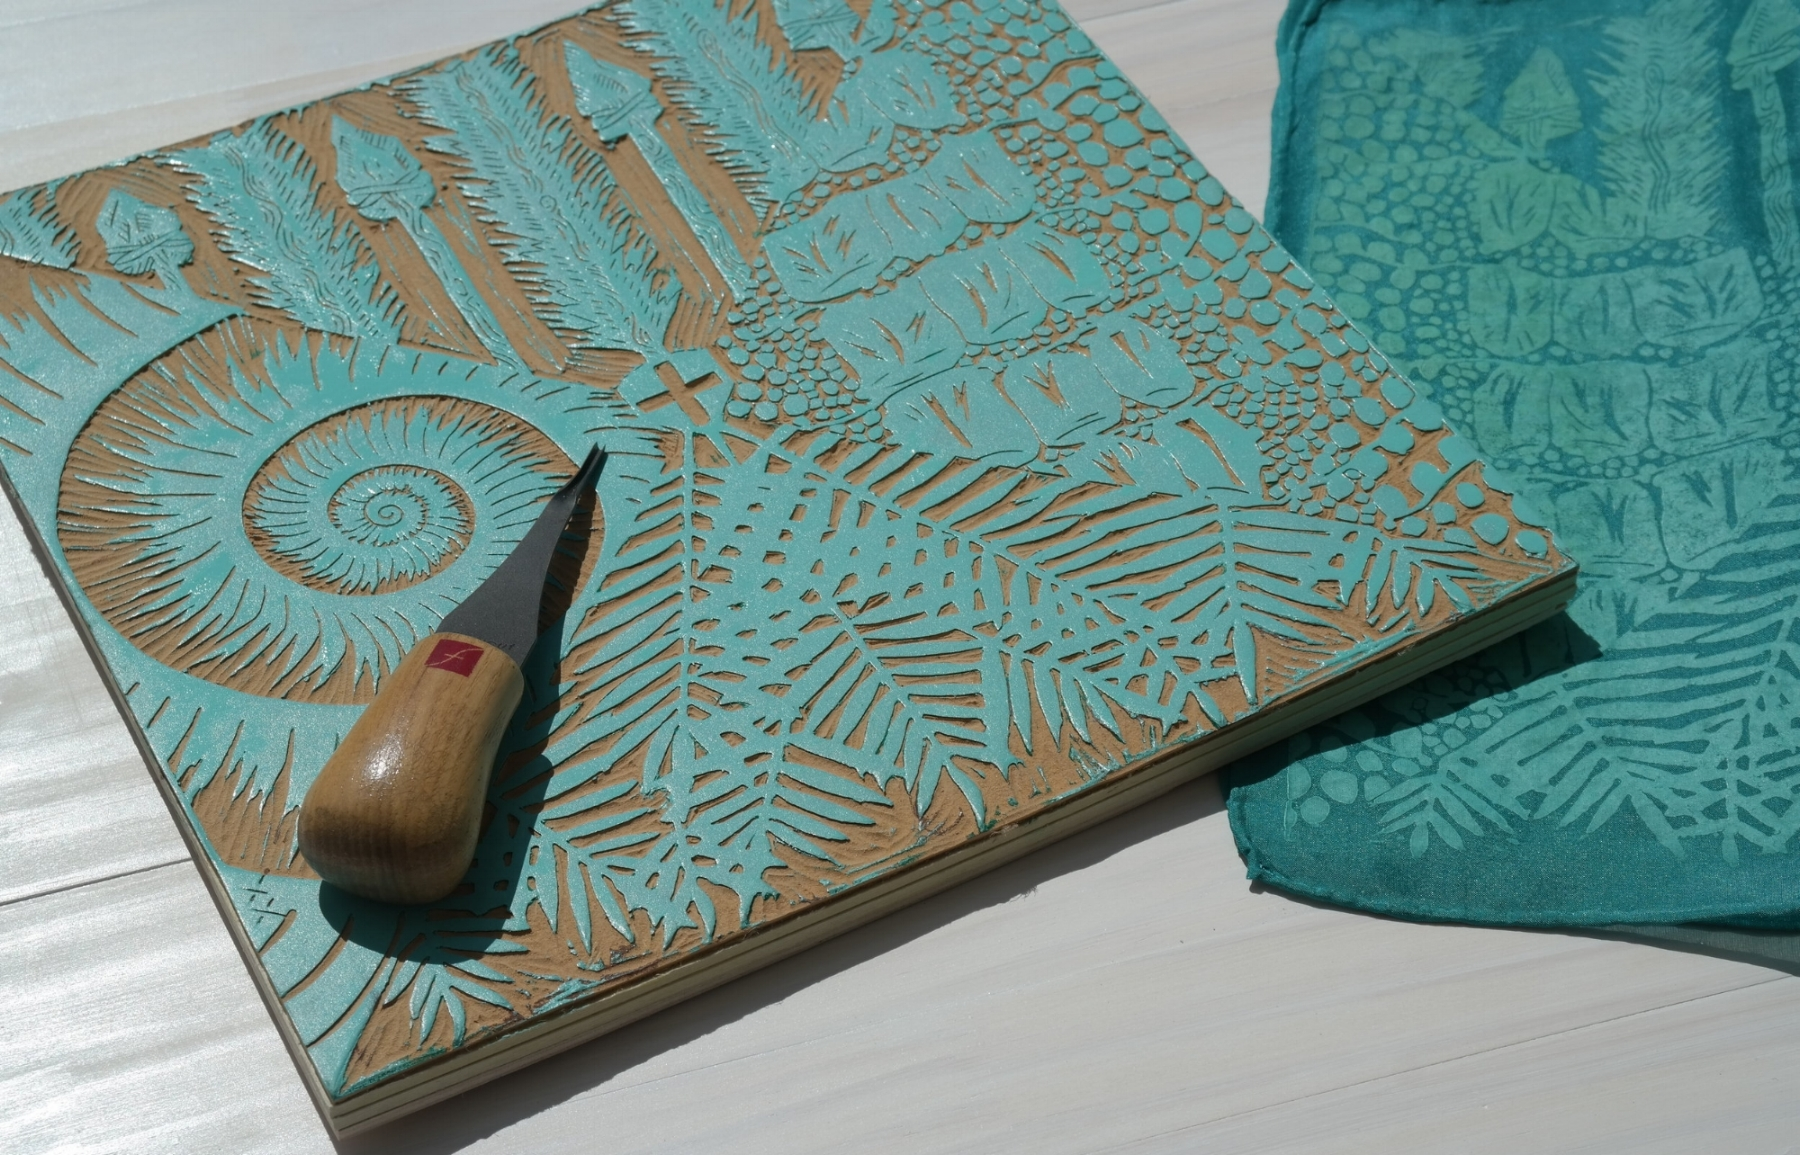 hand-carvedhand-stampedhand-dyed -